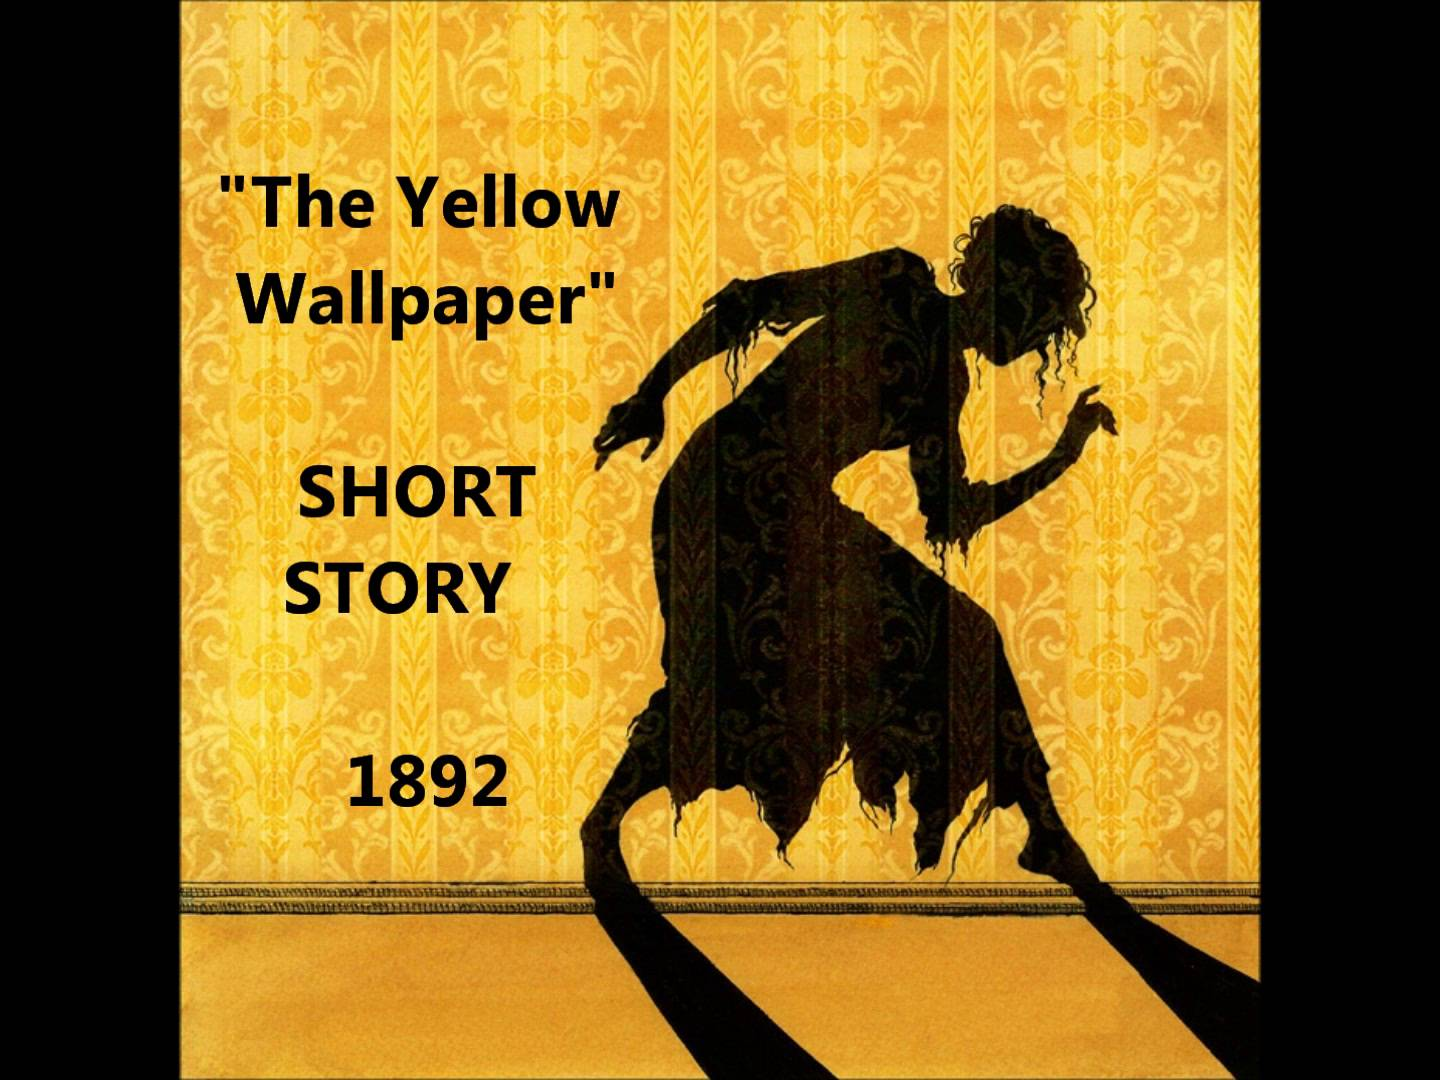 The Yellow Wallpaper And The Story Of Charlotte Perkins Gilman Anglozine